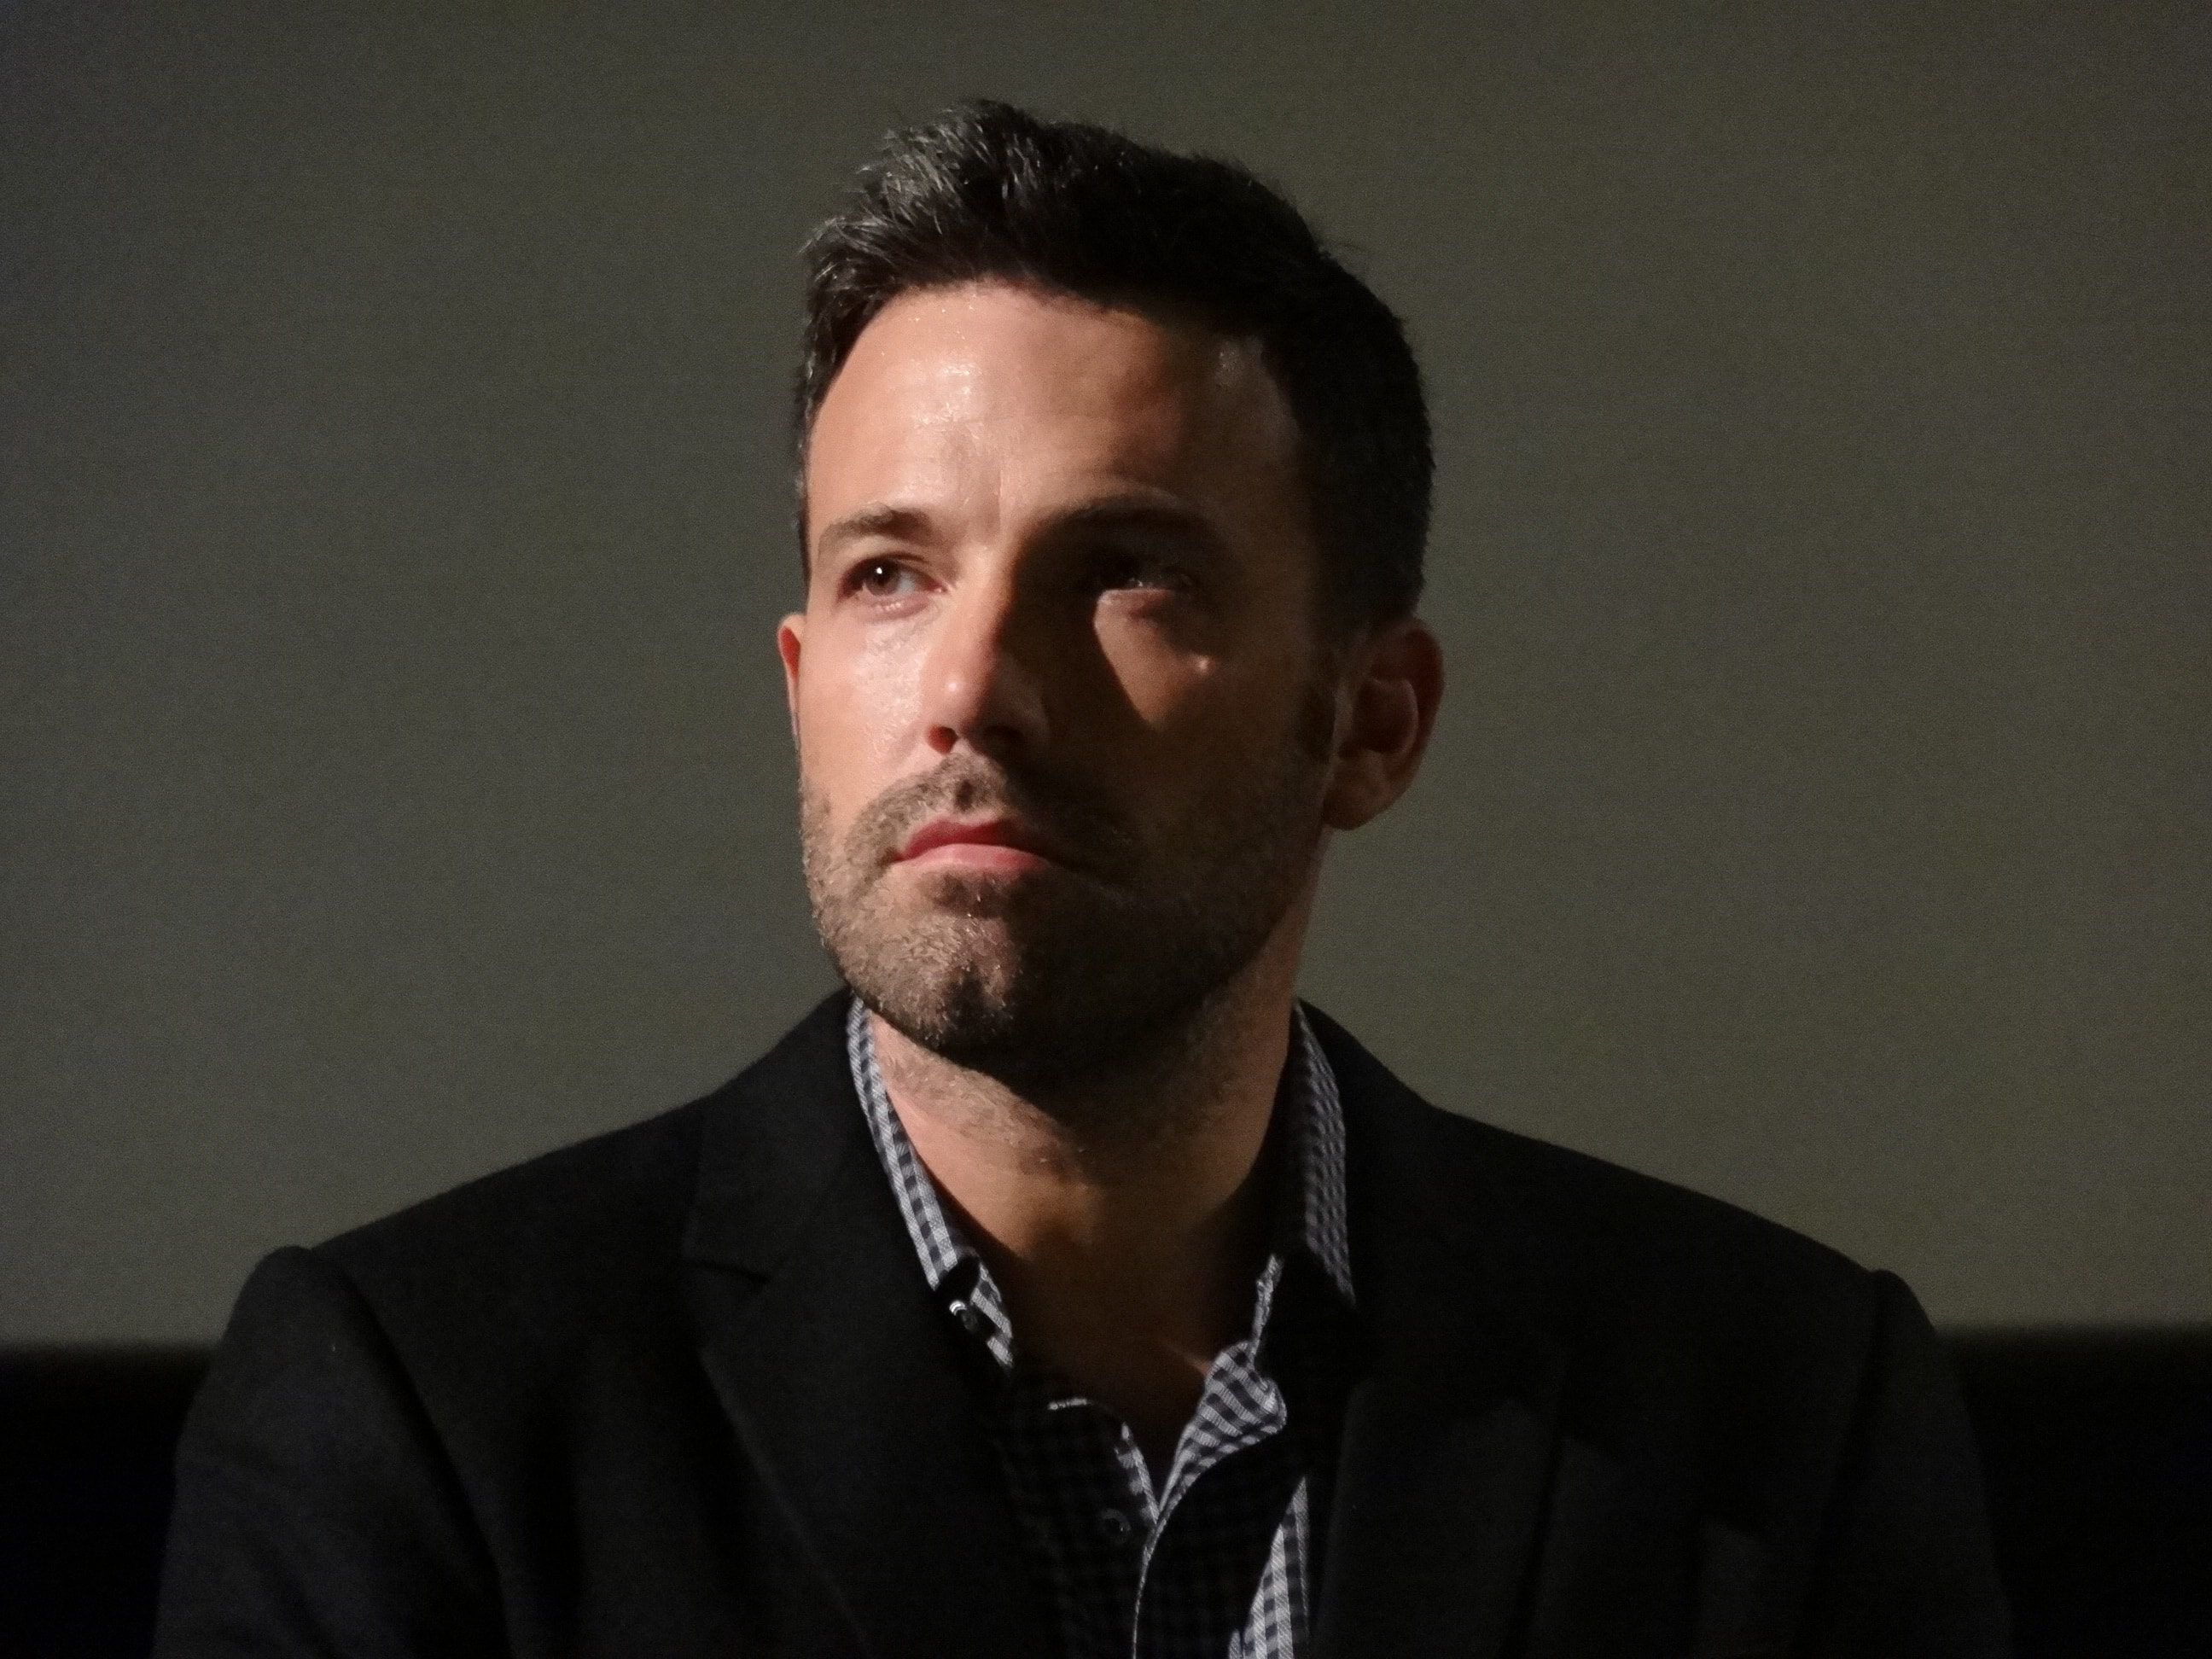 Ben Affleck Widescreen for desktop